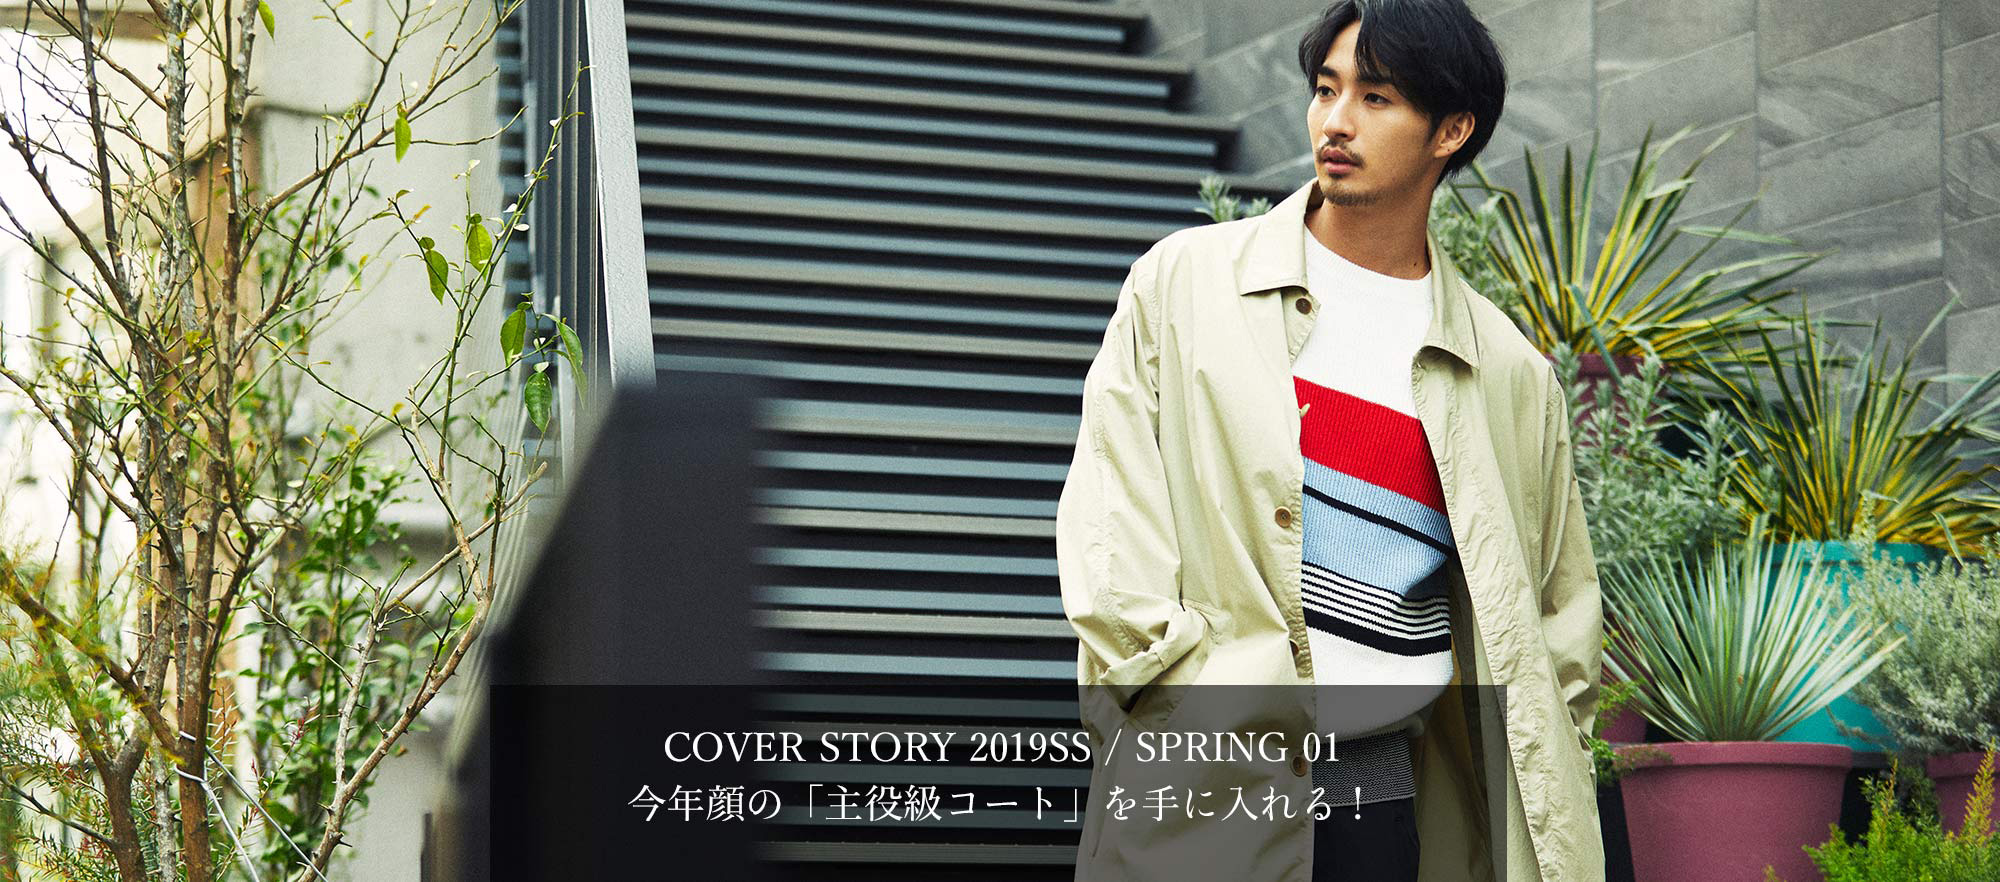 COVER STORY 2019SS